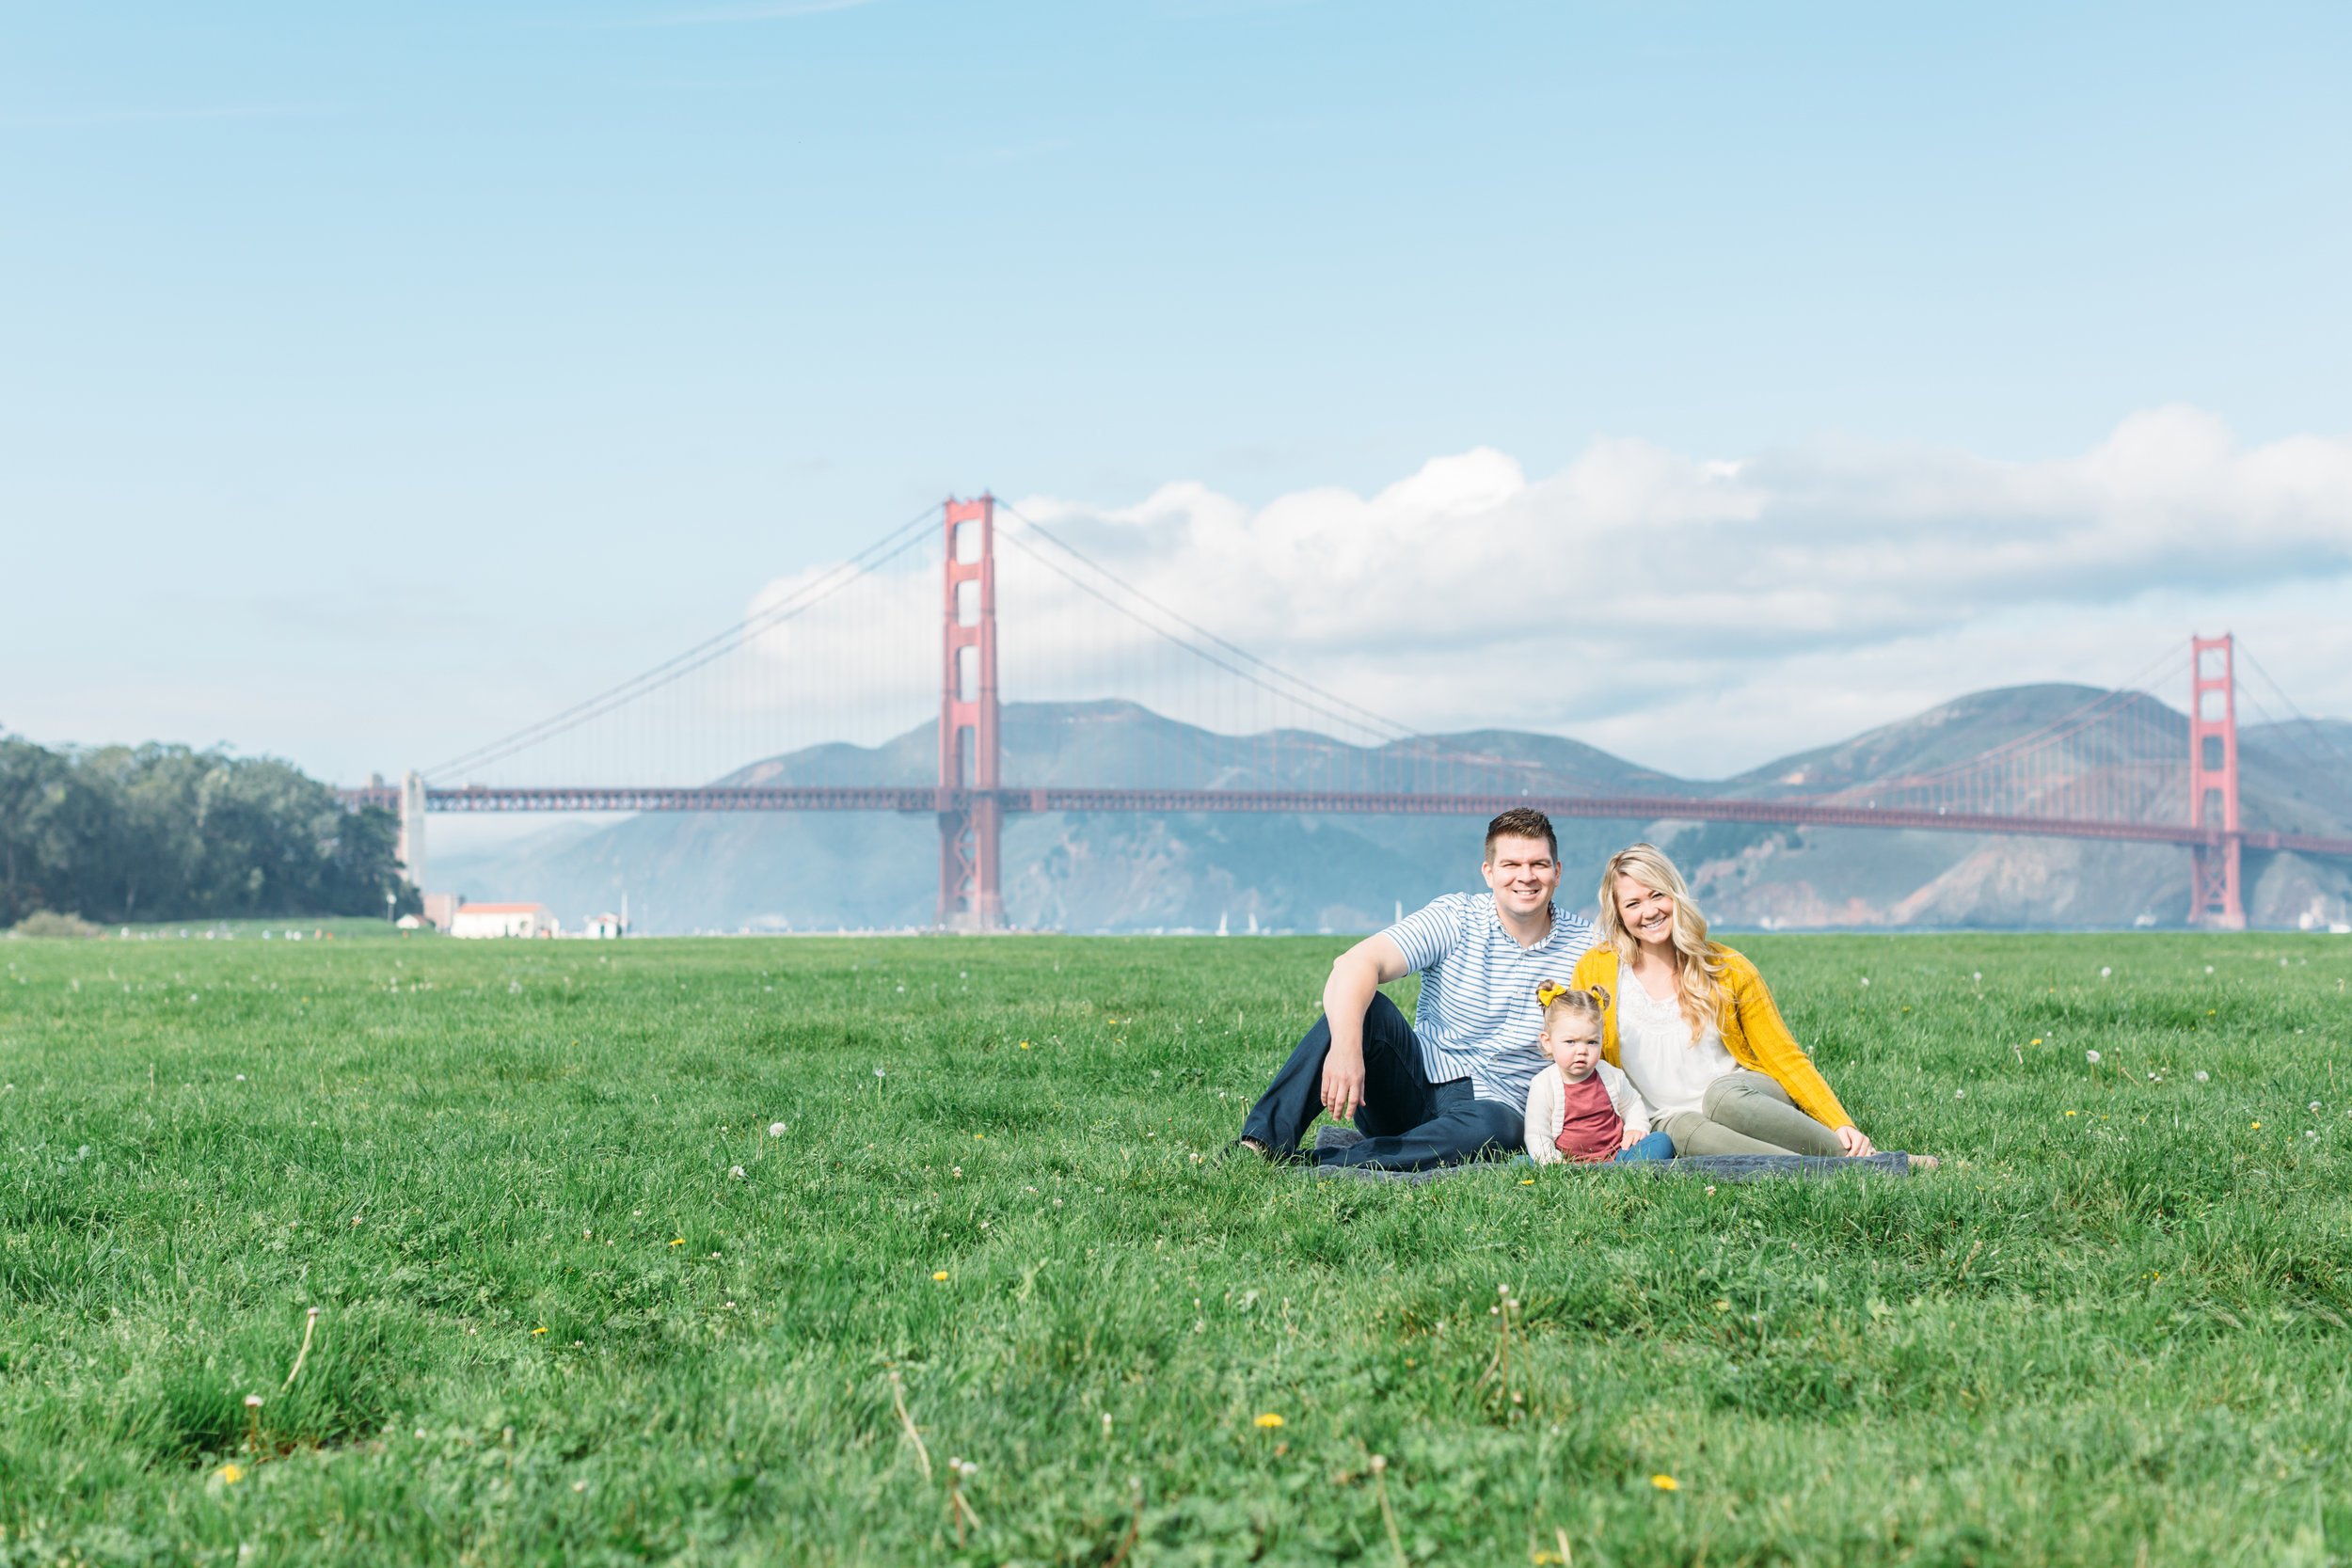 crissy-field-san-francisco-family-pictures-12.jpg